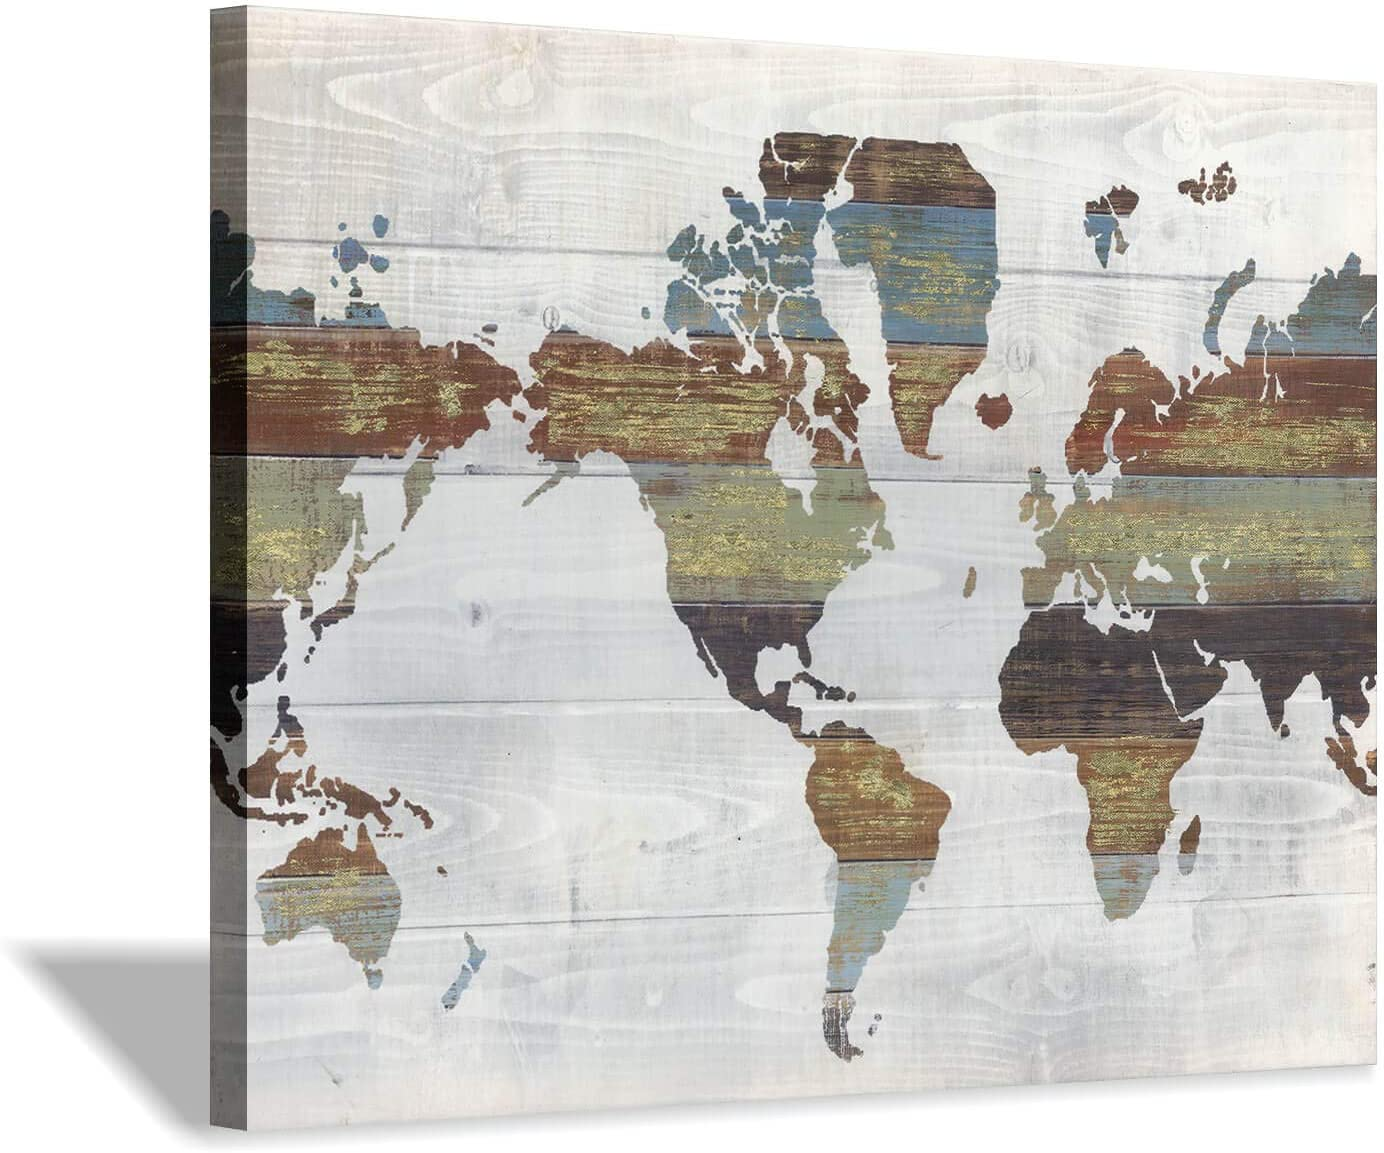 Canvas Wall Art World Map: Retro Wood Background Vintage Artwork Canvas Print in Brown and White for Home or Office Decoration (24'' x 18'')